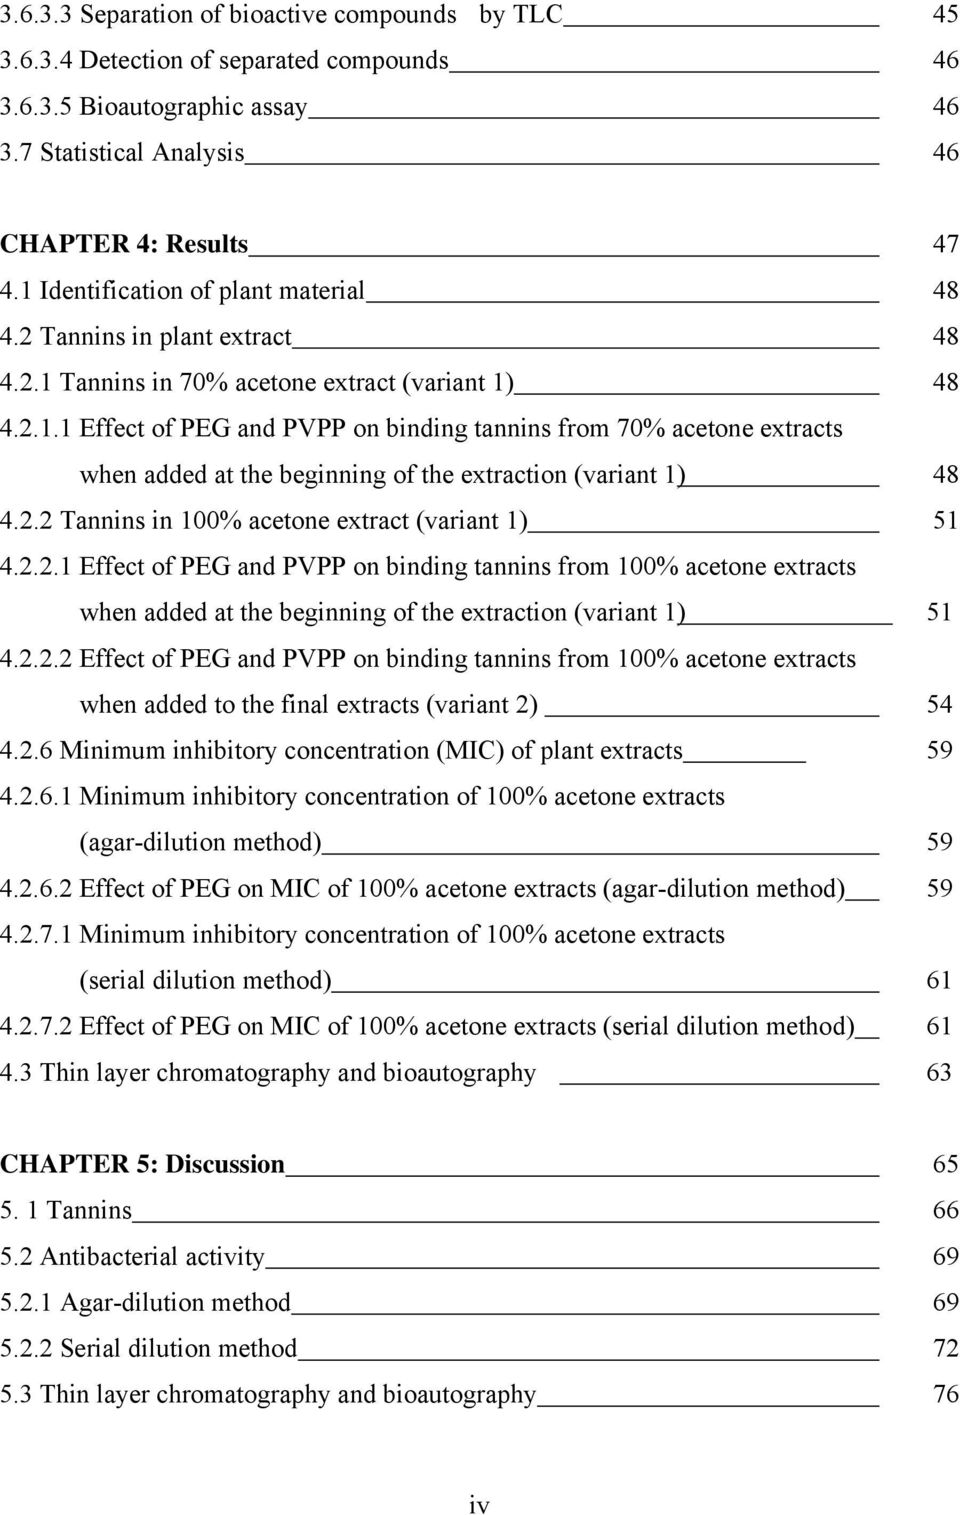 2.2 Tannins in 100% acetone extract (variant 1) 51 4.2.2.1 Effect of PEG and PVPP on binding tannins from 100% acetone extracts when added at the beginning of the extraction (variant 1) 51 4.2.2.2 Effect of PEG and PVPP on binding tannins from 100% acetone extracts when added to the final extracts (variant 2) 54 4.